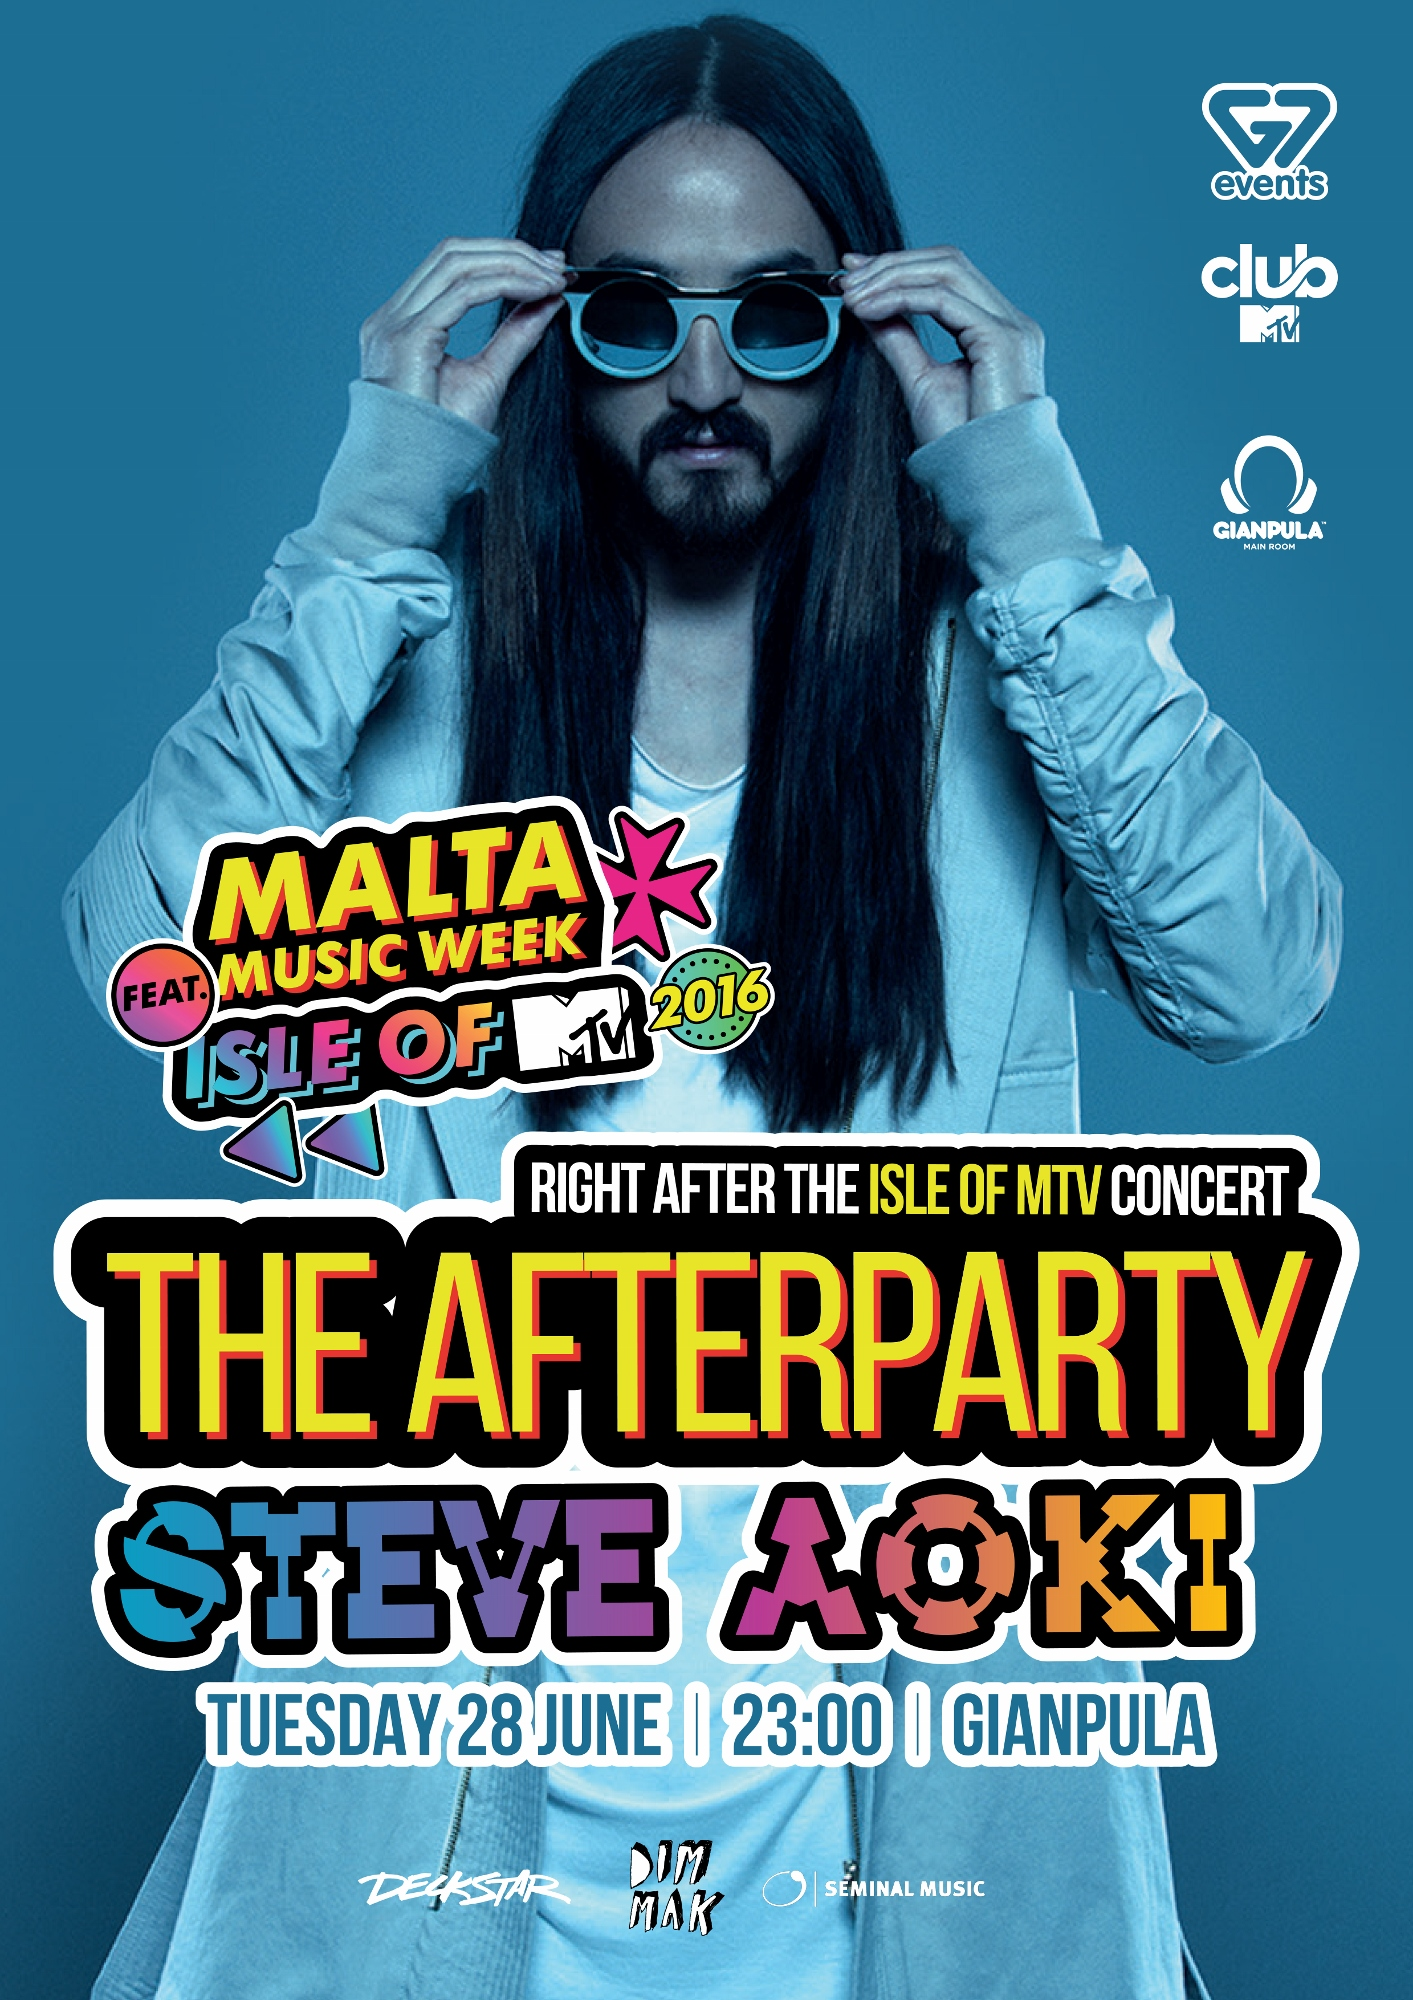 The Official ISLE OF MTV Afterparty ft. STEVE AOKI flyer